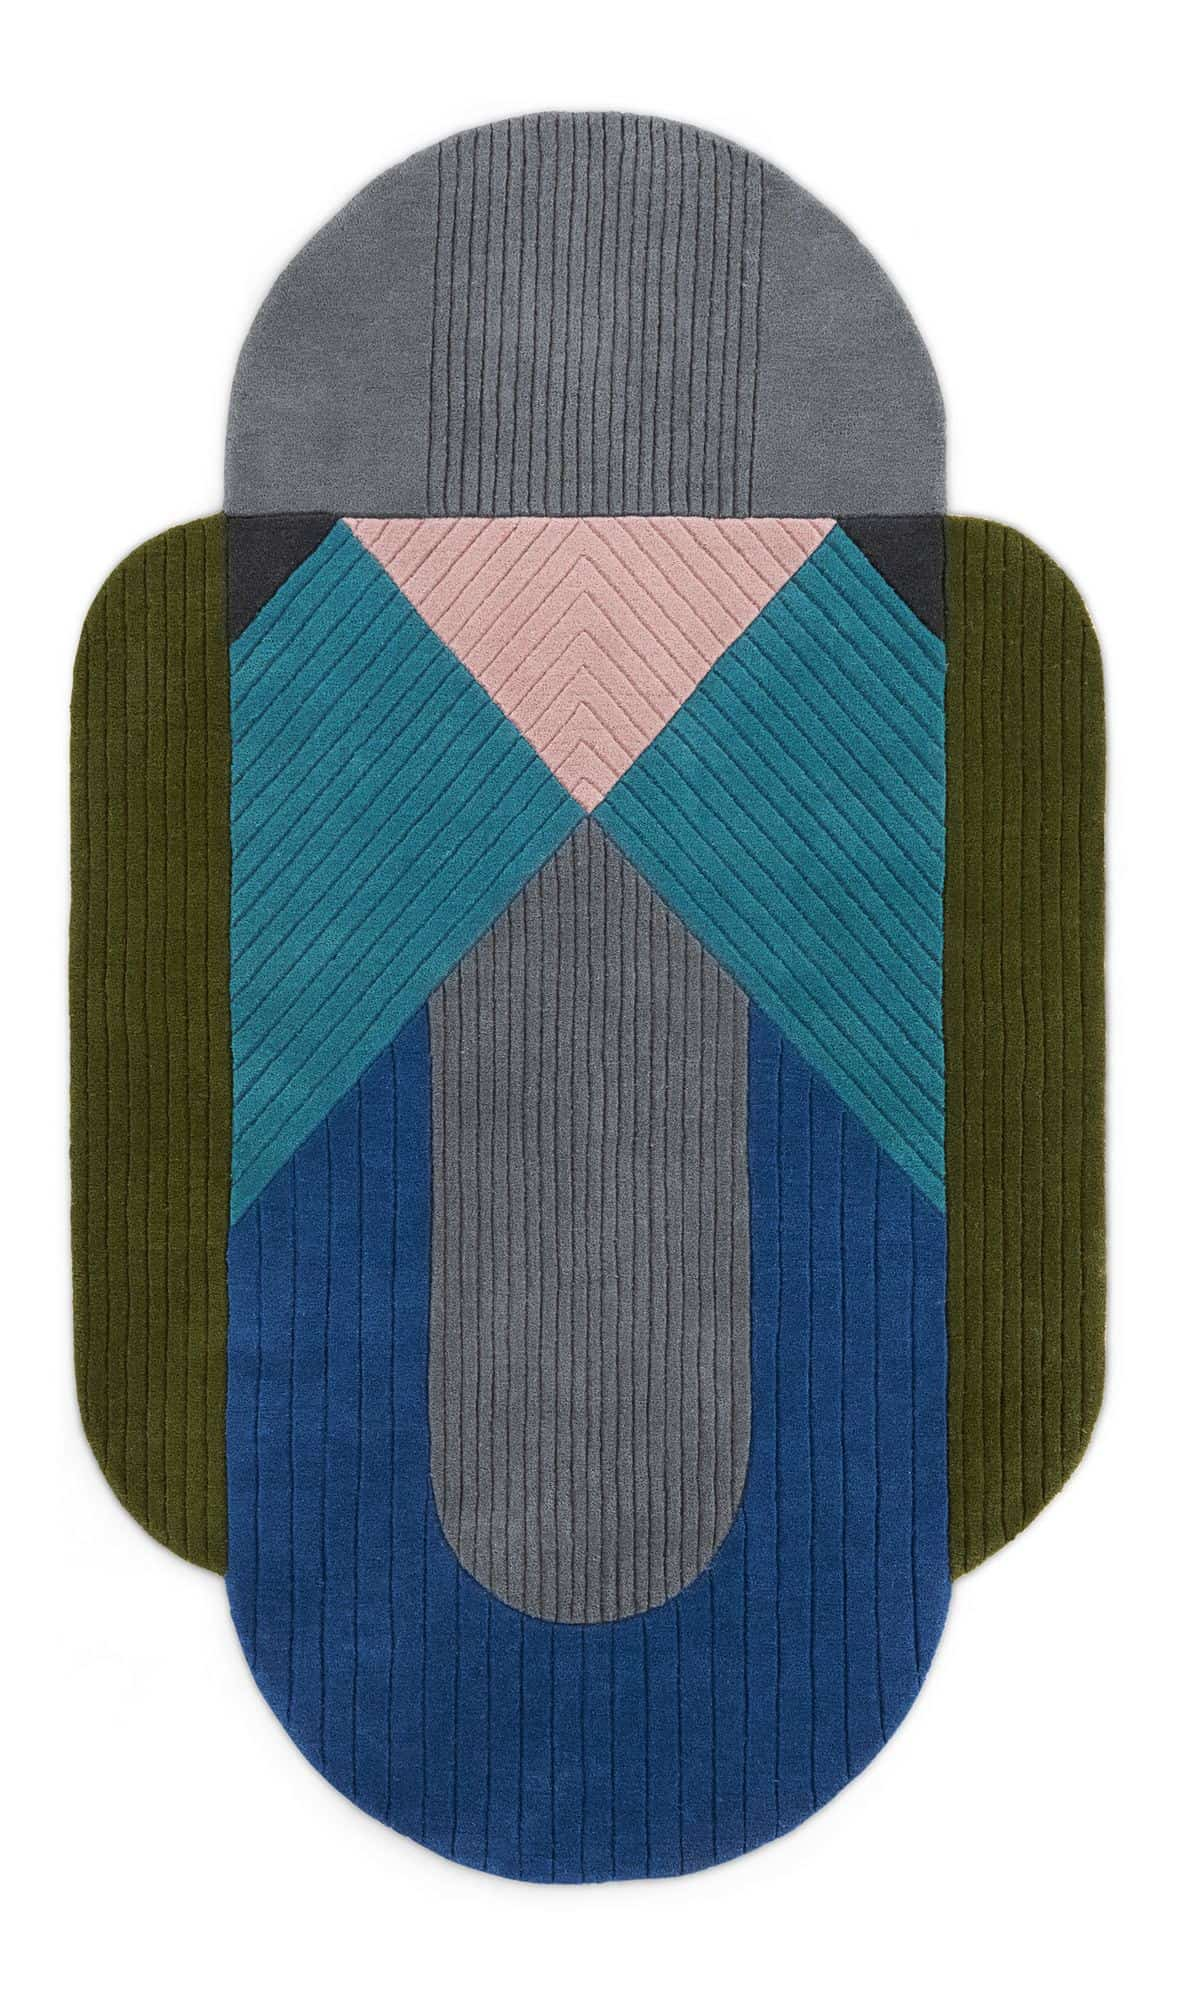 Balico hand-tufted rug made.com - unusual shaped rug